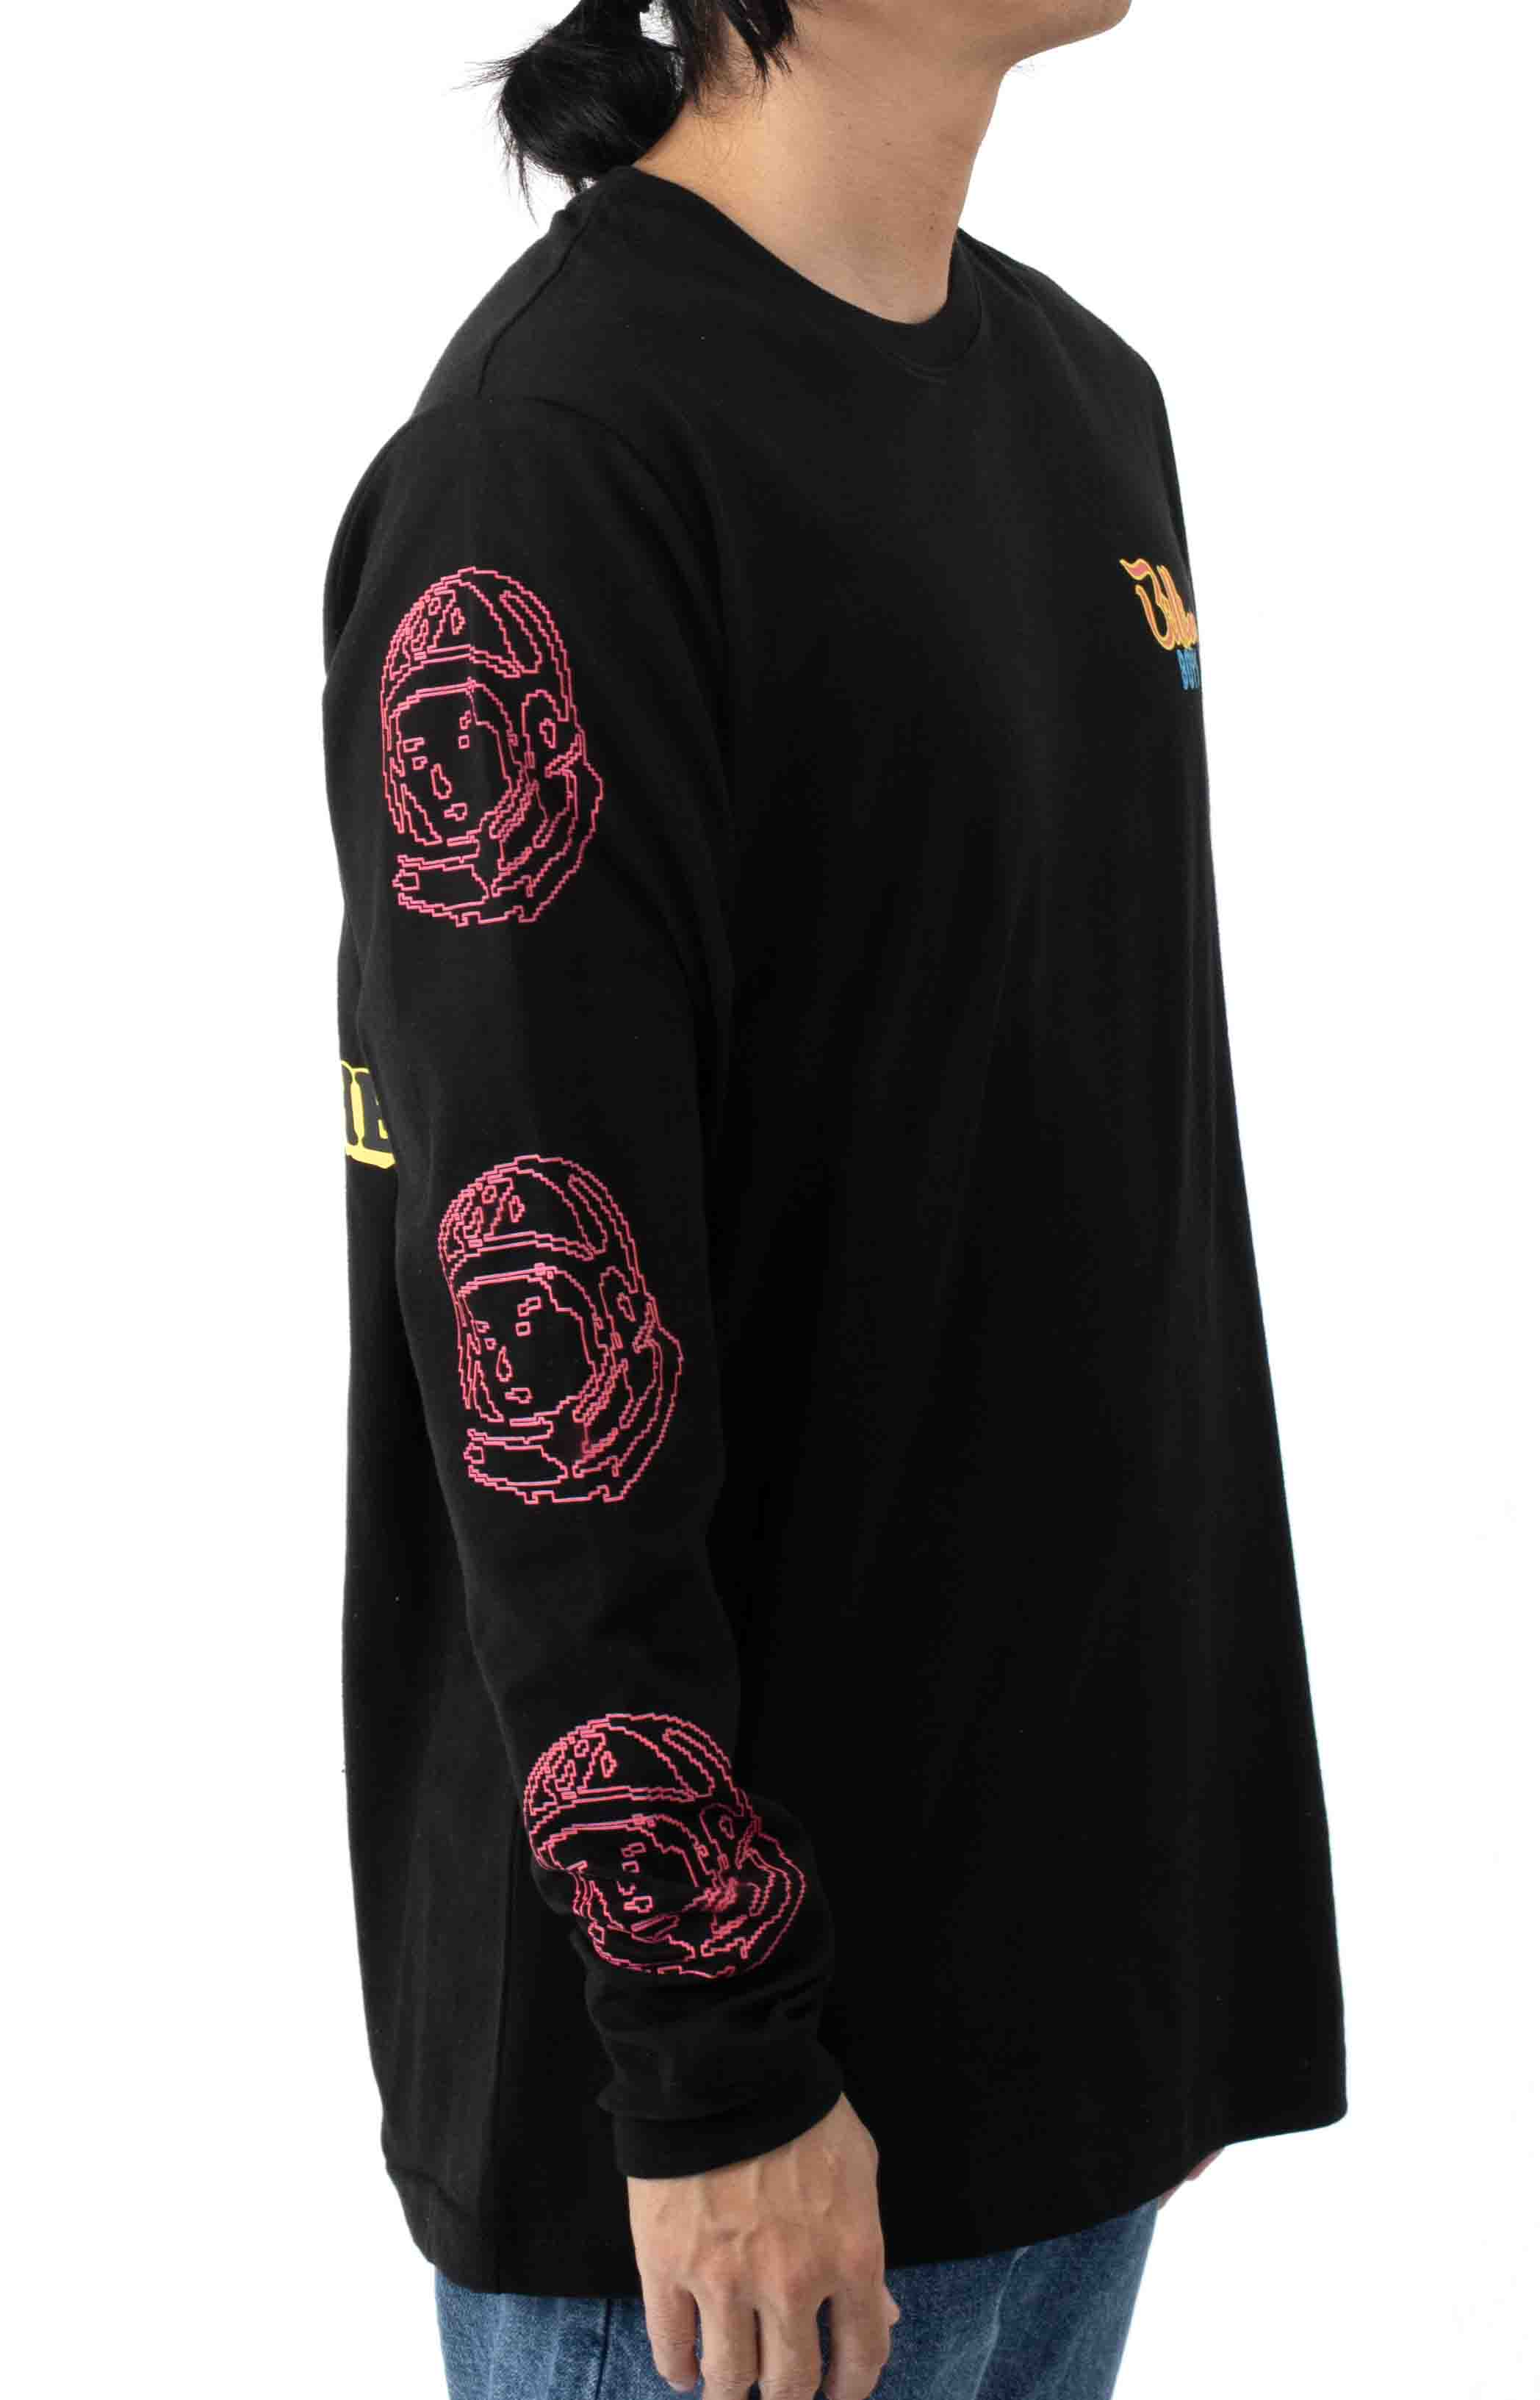 Heart and Mind L/S Shirt - Black  4